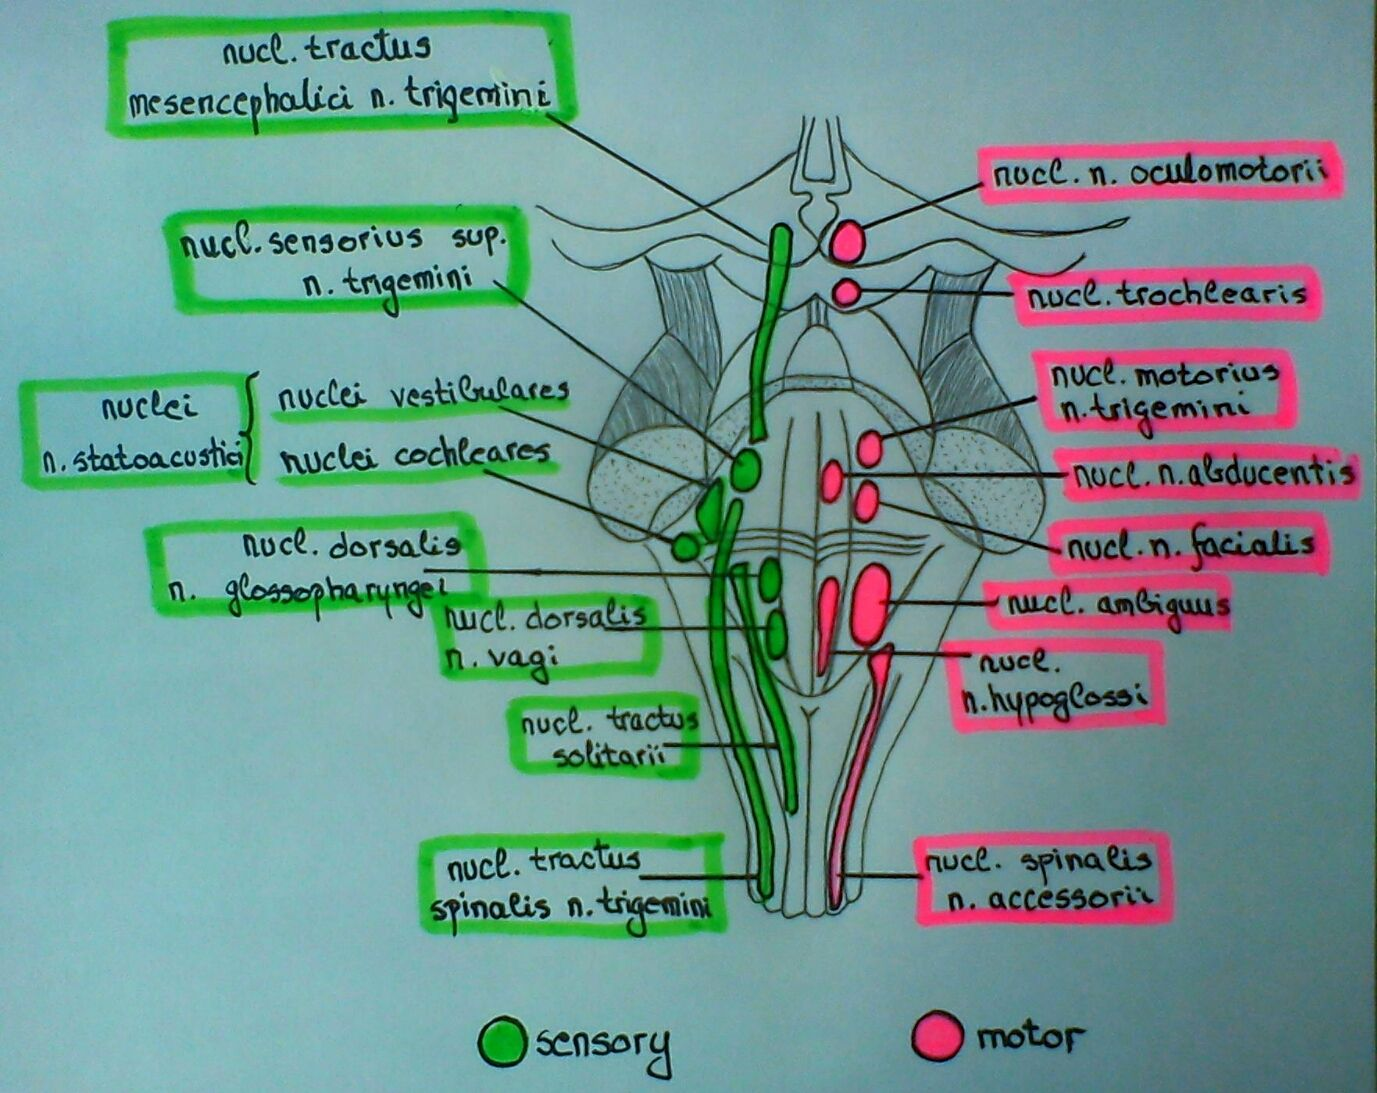 Cranial nerve nuclei in brainstem (schema) (With images ...